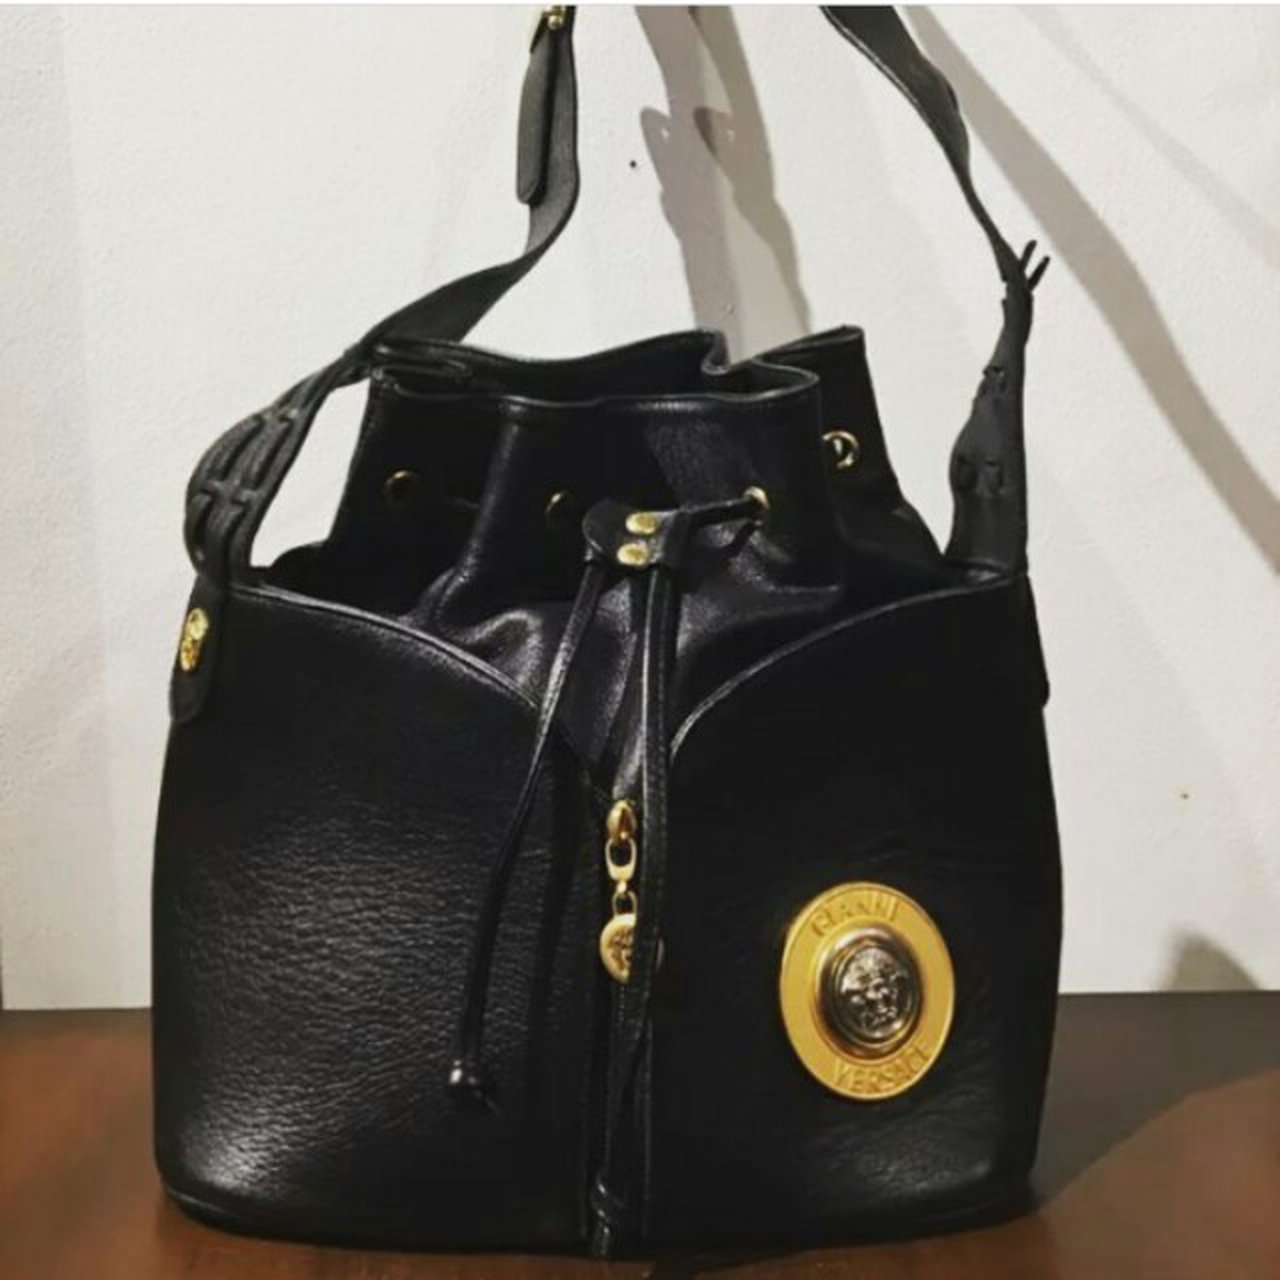 d0929371c7f5 Rare Vintage Gianni Versace leather BAG OF DREAMS. bought - Depop